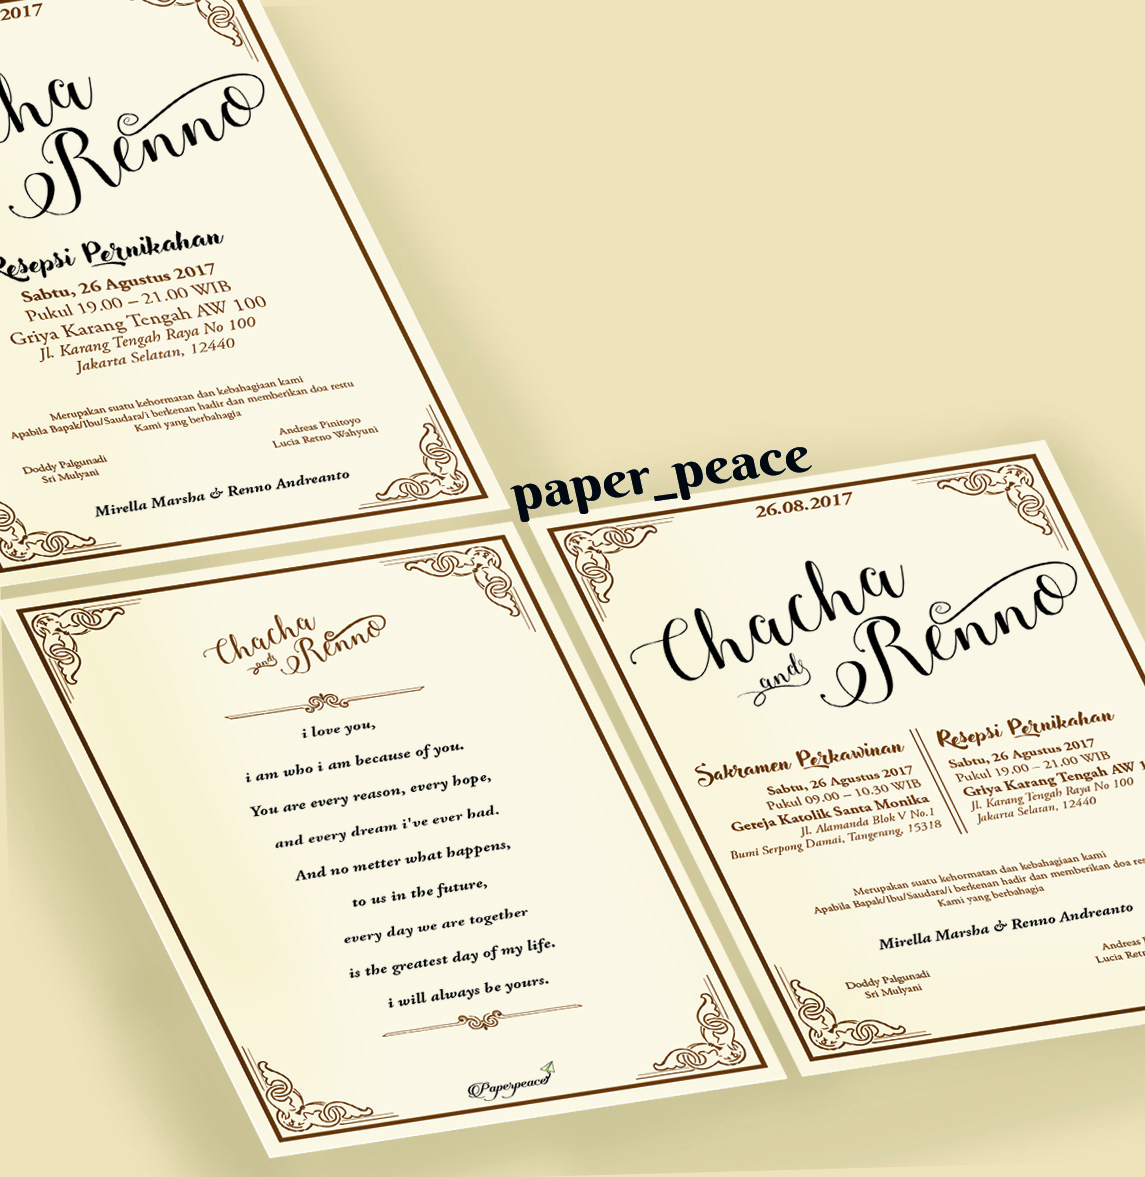 Paperpeace: Wedding Invitation For Ms. Chacha & Mr.Renno